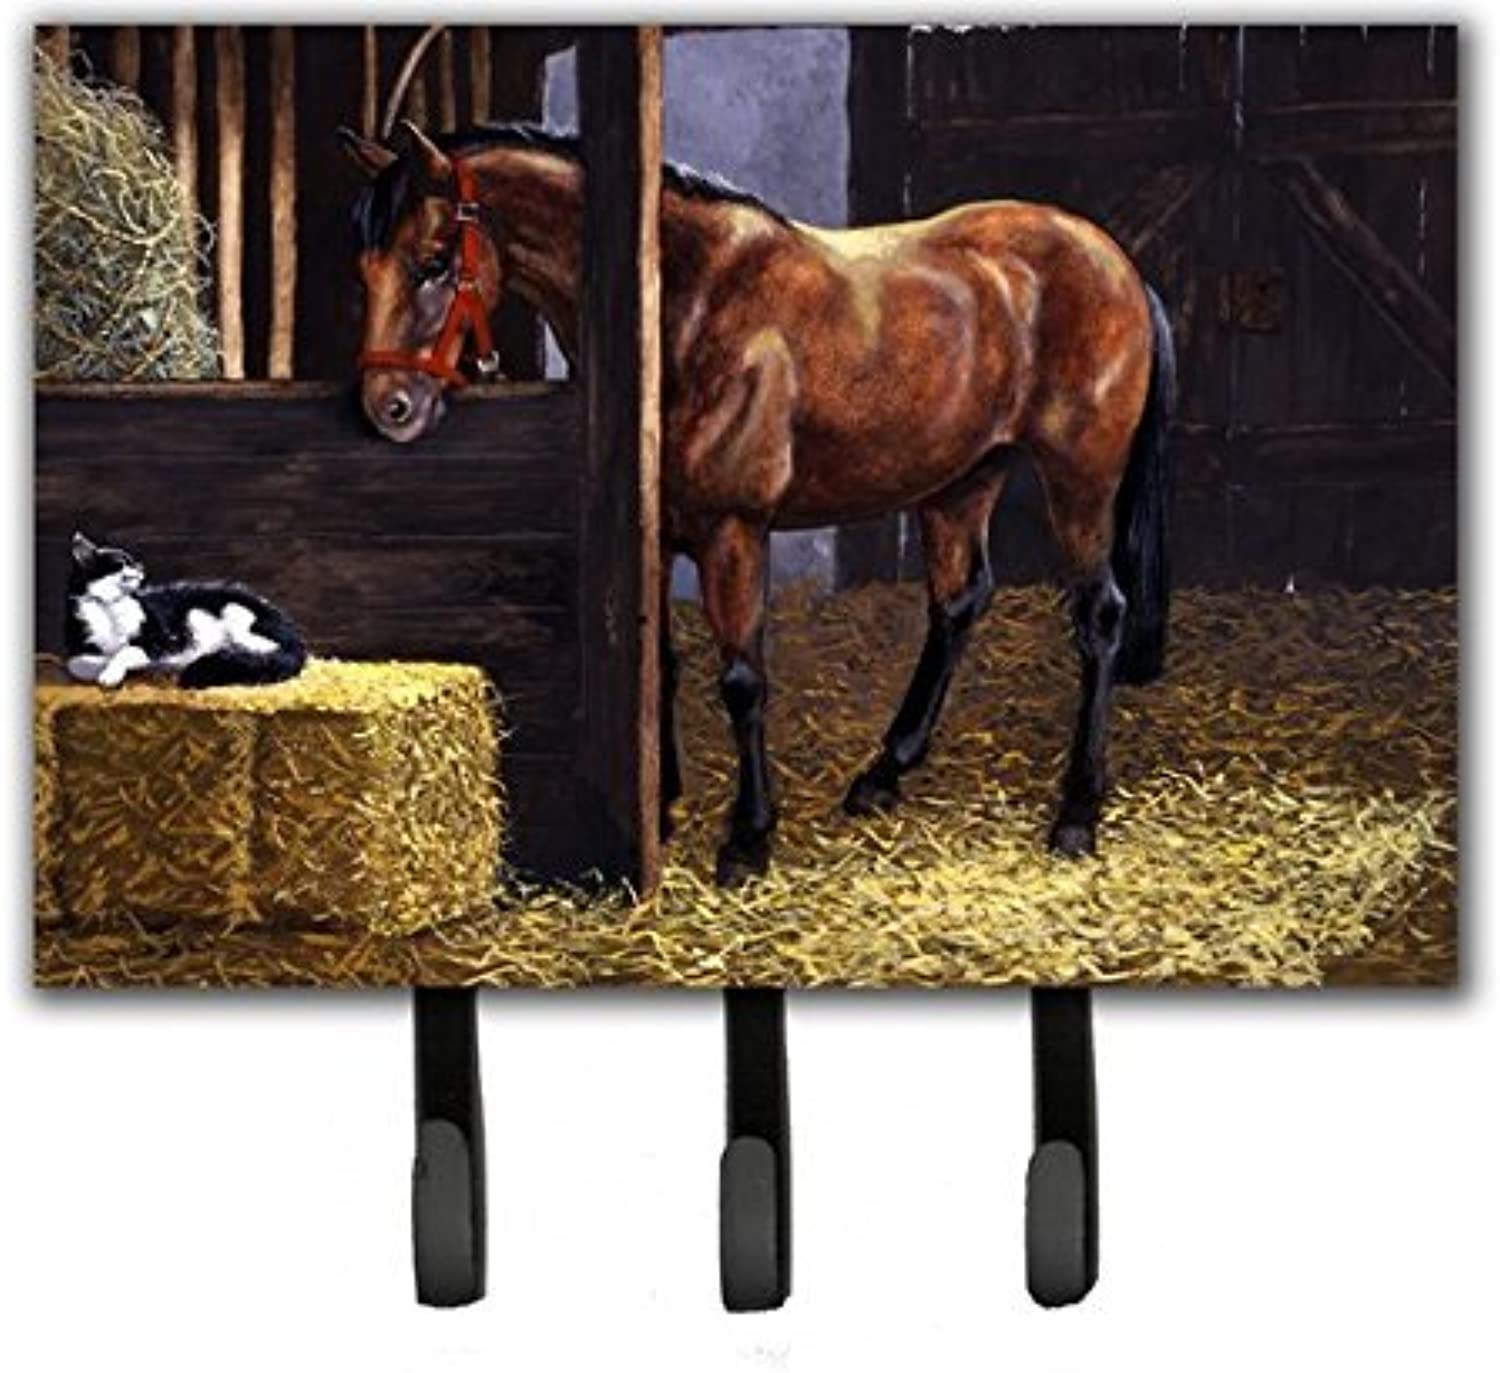 Caroline's Treasures BDBA0295TH68 Horse in Stable with Cat Leash Or Key Holder, Large, Multicolor